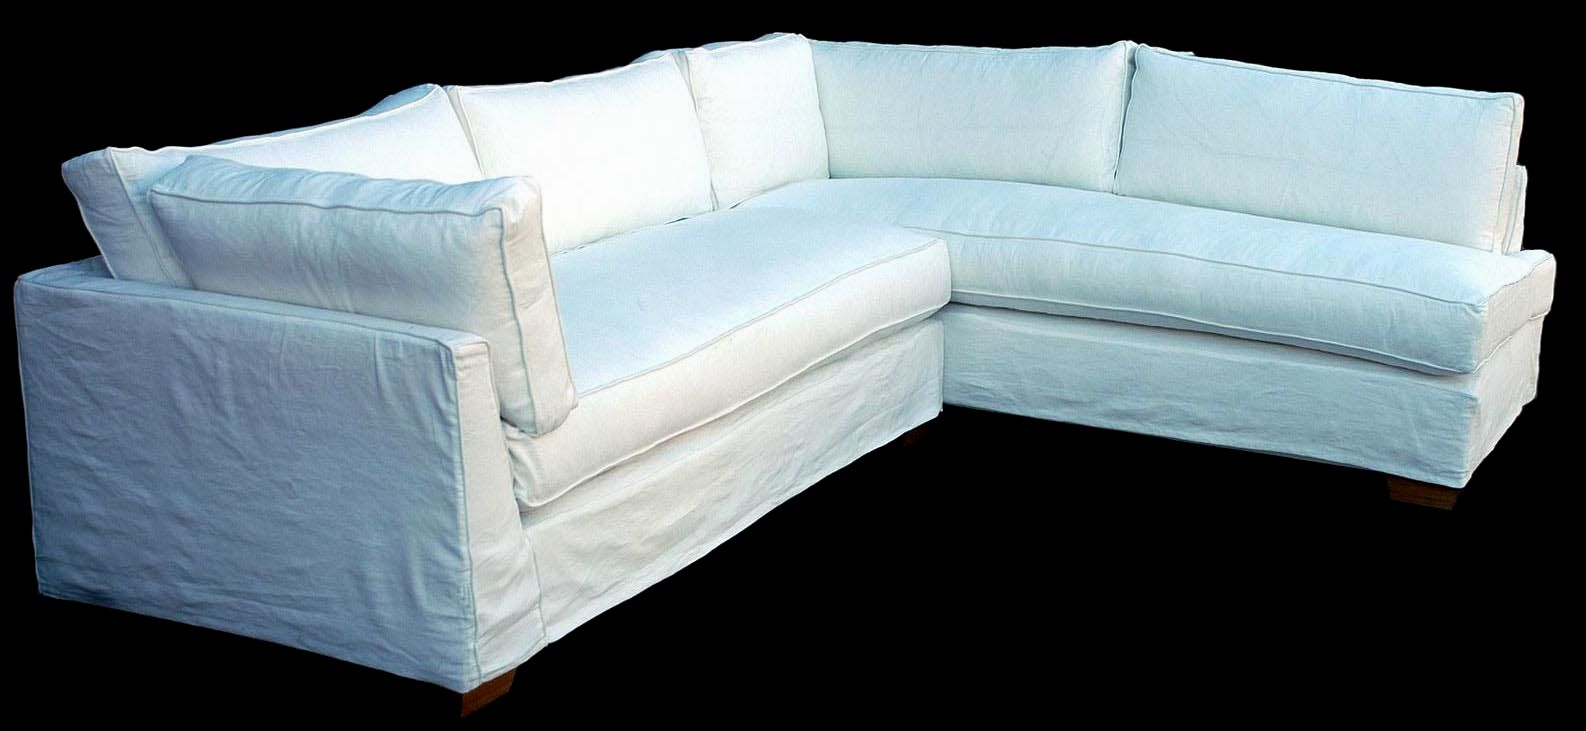 fascinating sectional reclining sofa picture-Cool Sectional Reclining sofa Construction